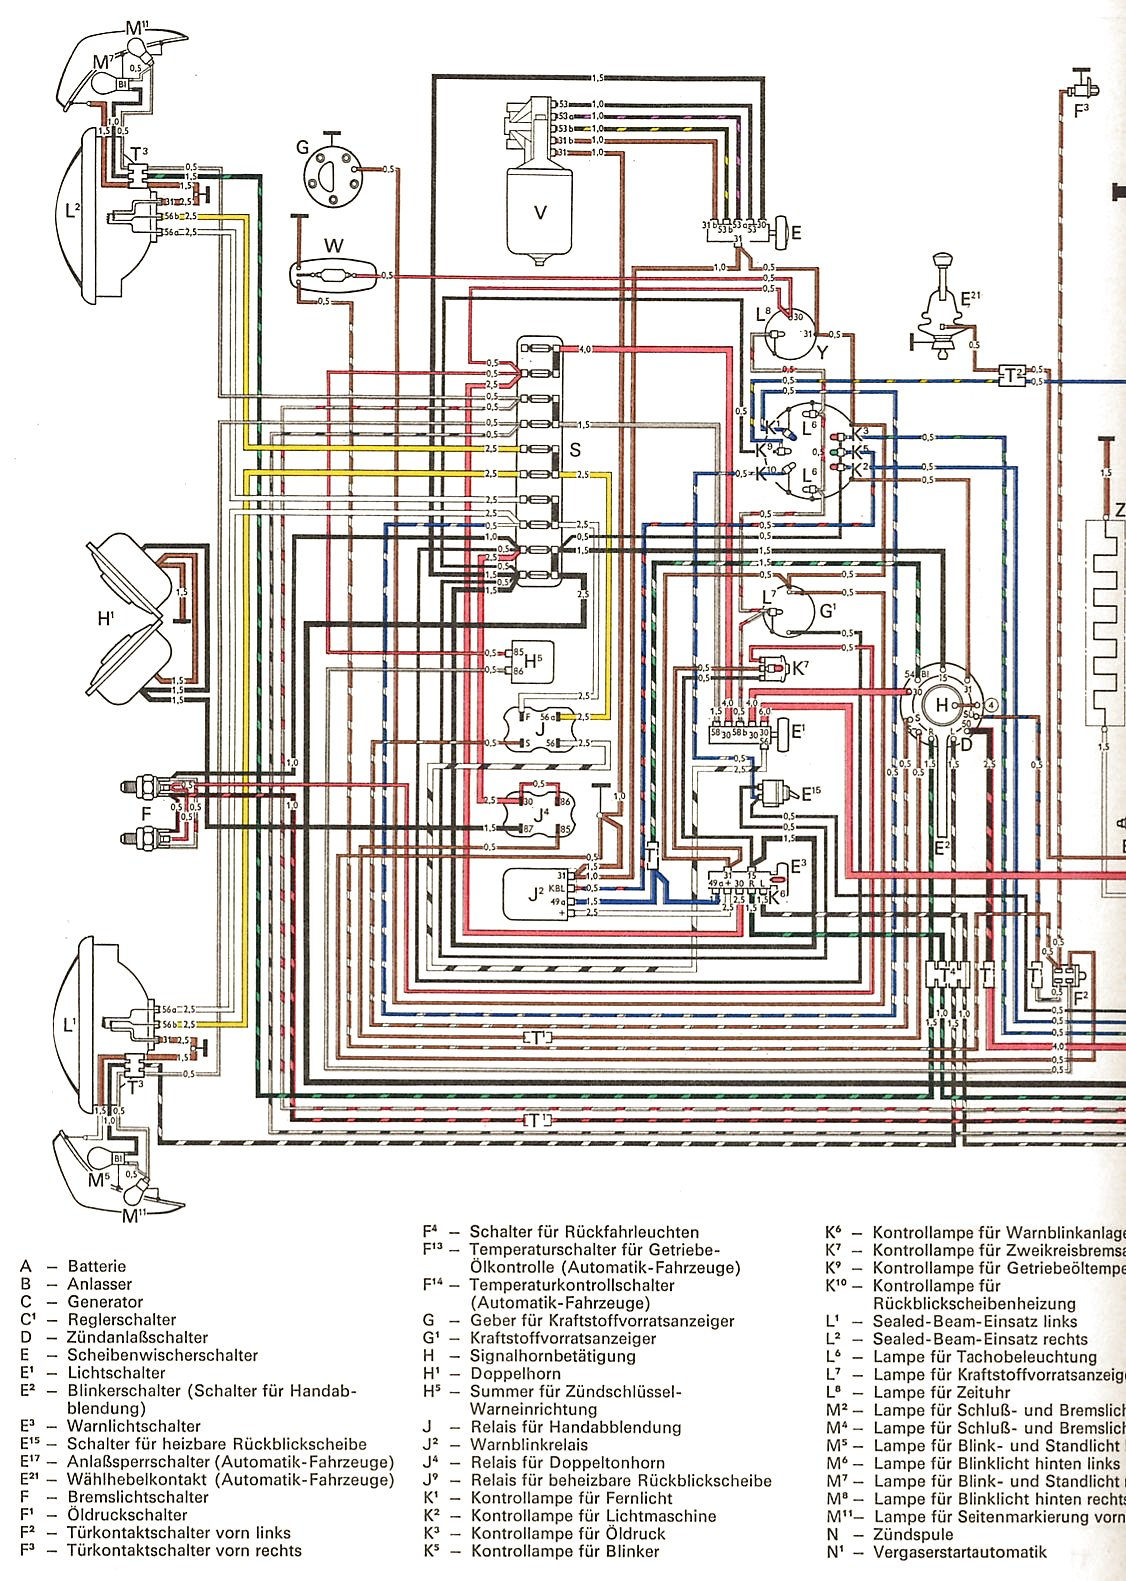 74 Charger Wiring Diagrams Library 2010 Dodge Diagram Thesamba Com Ghia View Topic Colored Rh 1974 Karmann